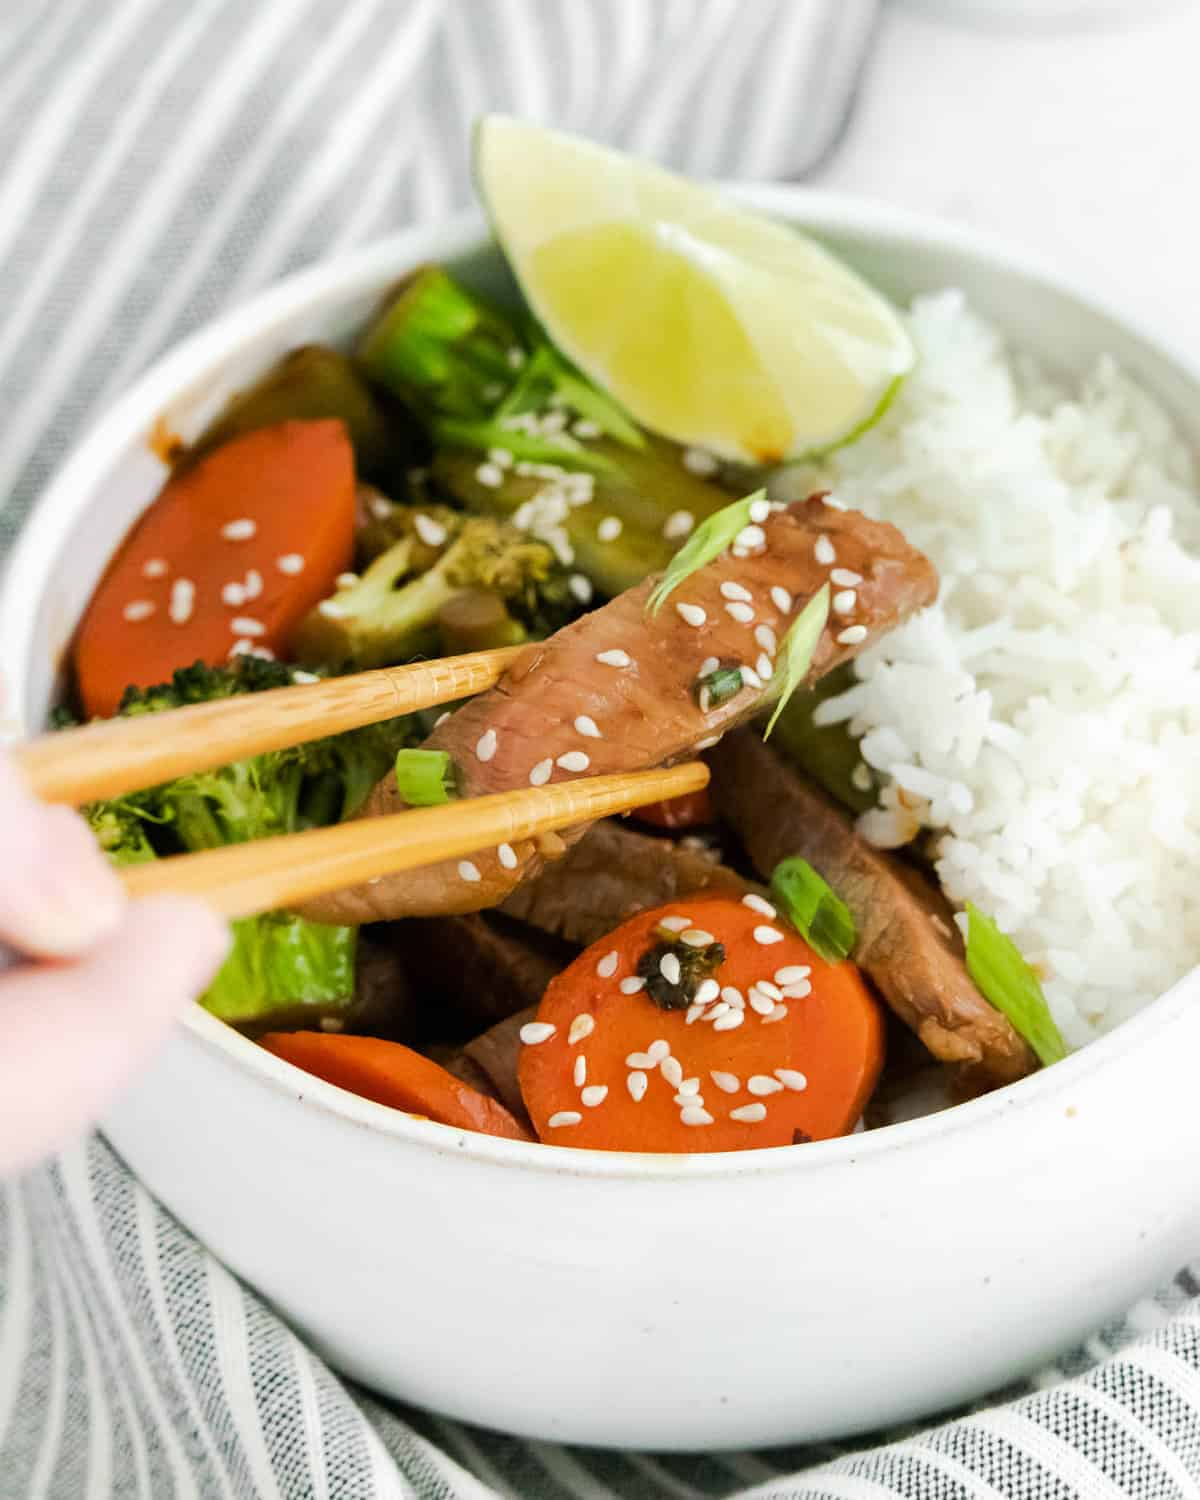 Chopsticks taking a piece of cooked steak out of a bowl of rice, beef, and vegetables.